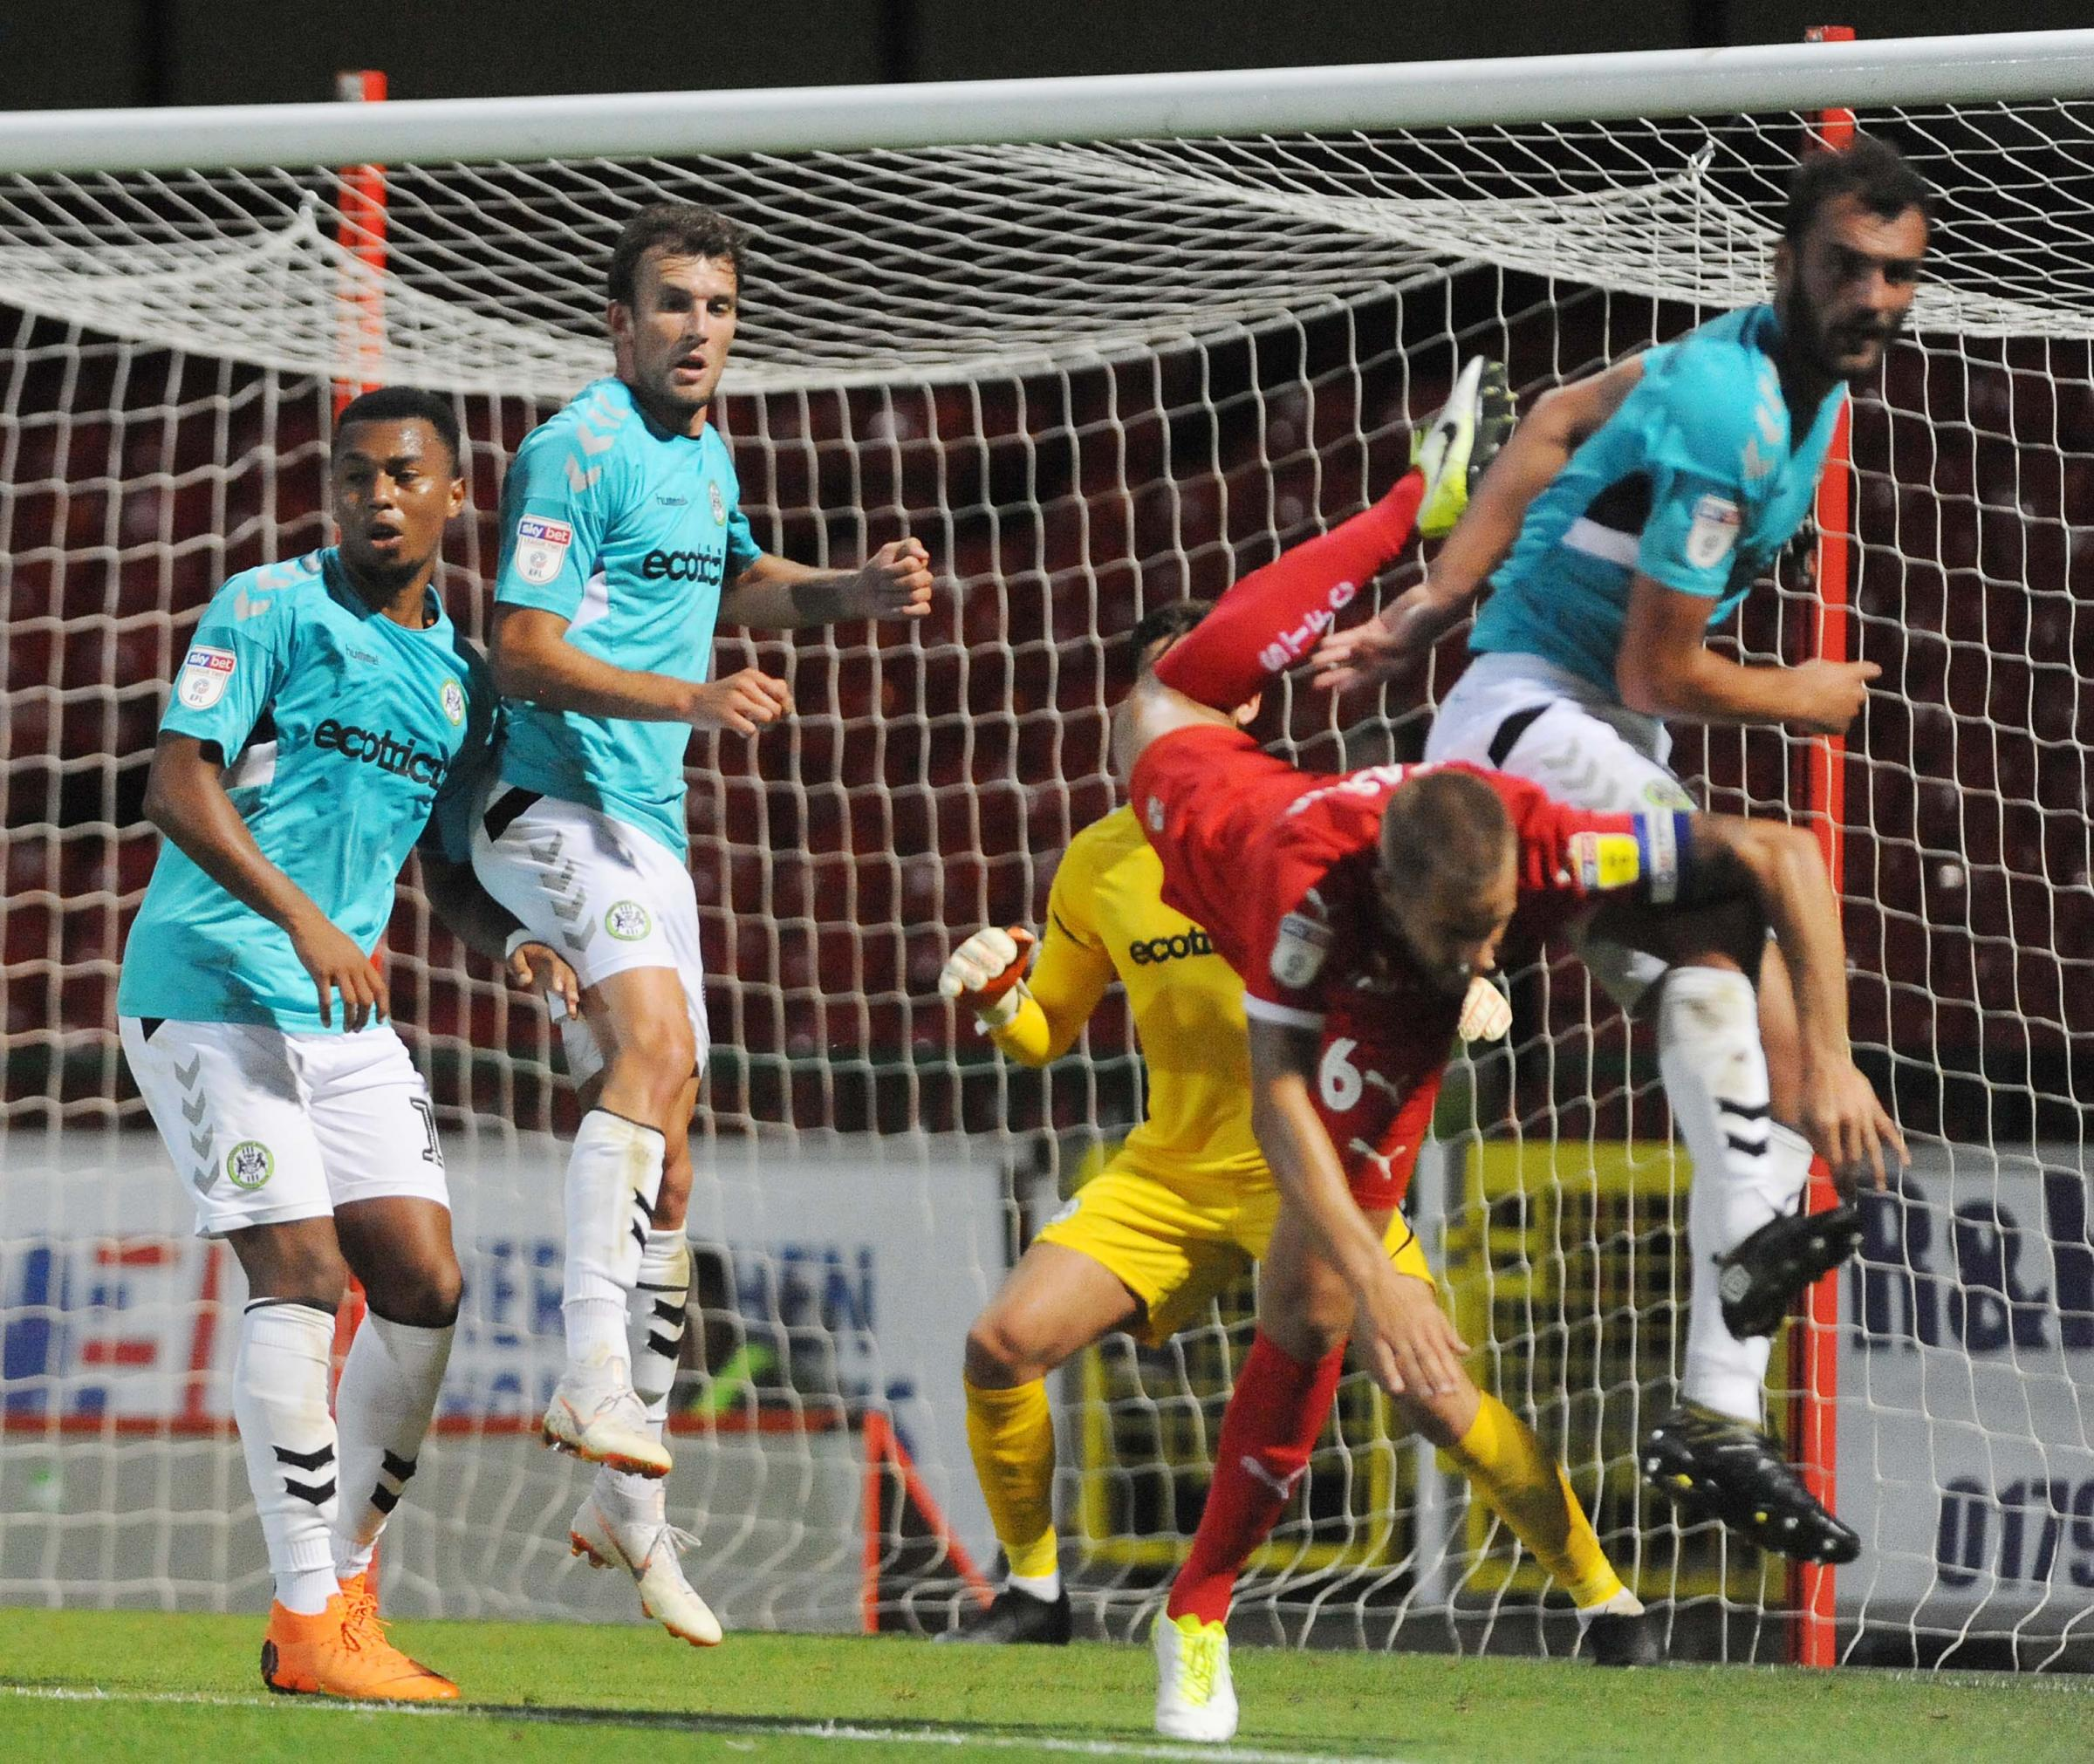 THE VERDICT: Swindon Town 0 Forest Green Rovers 1